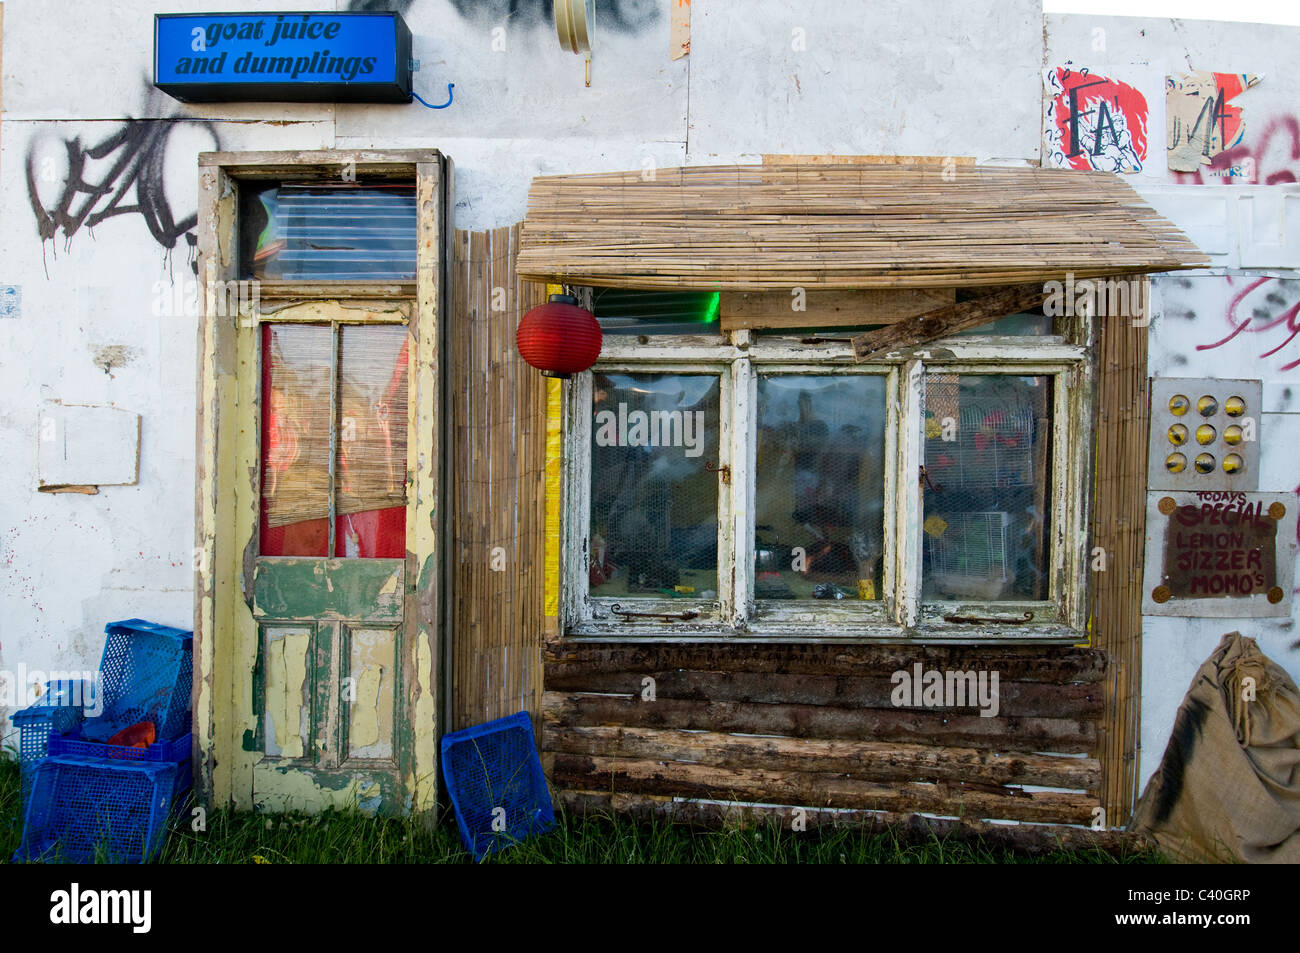 Derelict Shop Front Door Sculpture Art Goat Juice Dumpling